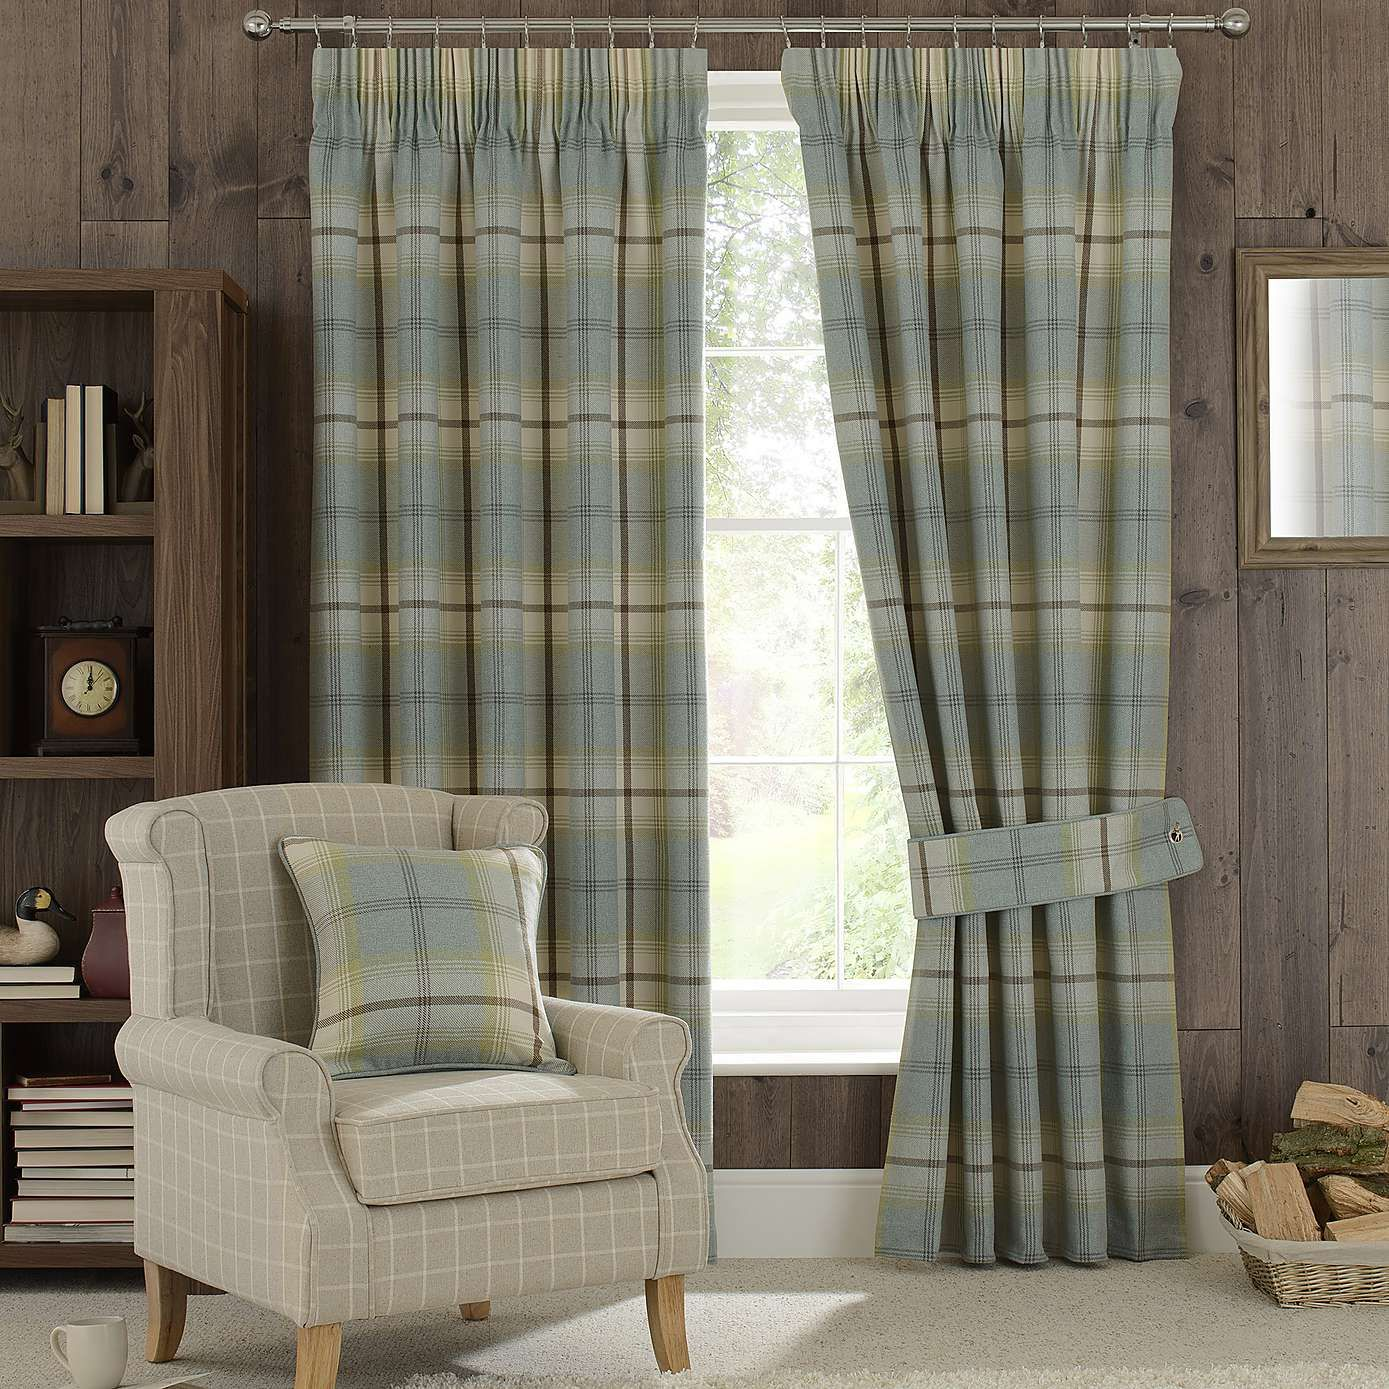 Highland Check Duck Egg Pencil Pleat Curtains Living